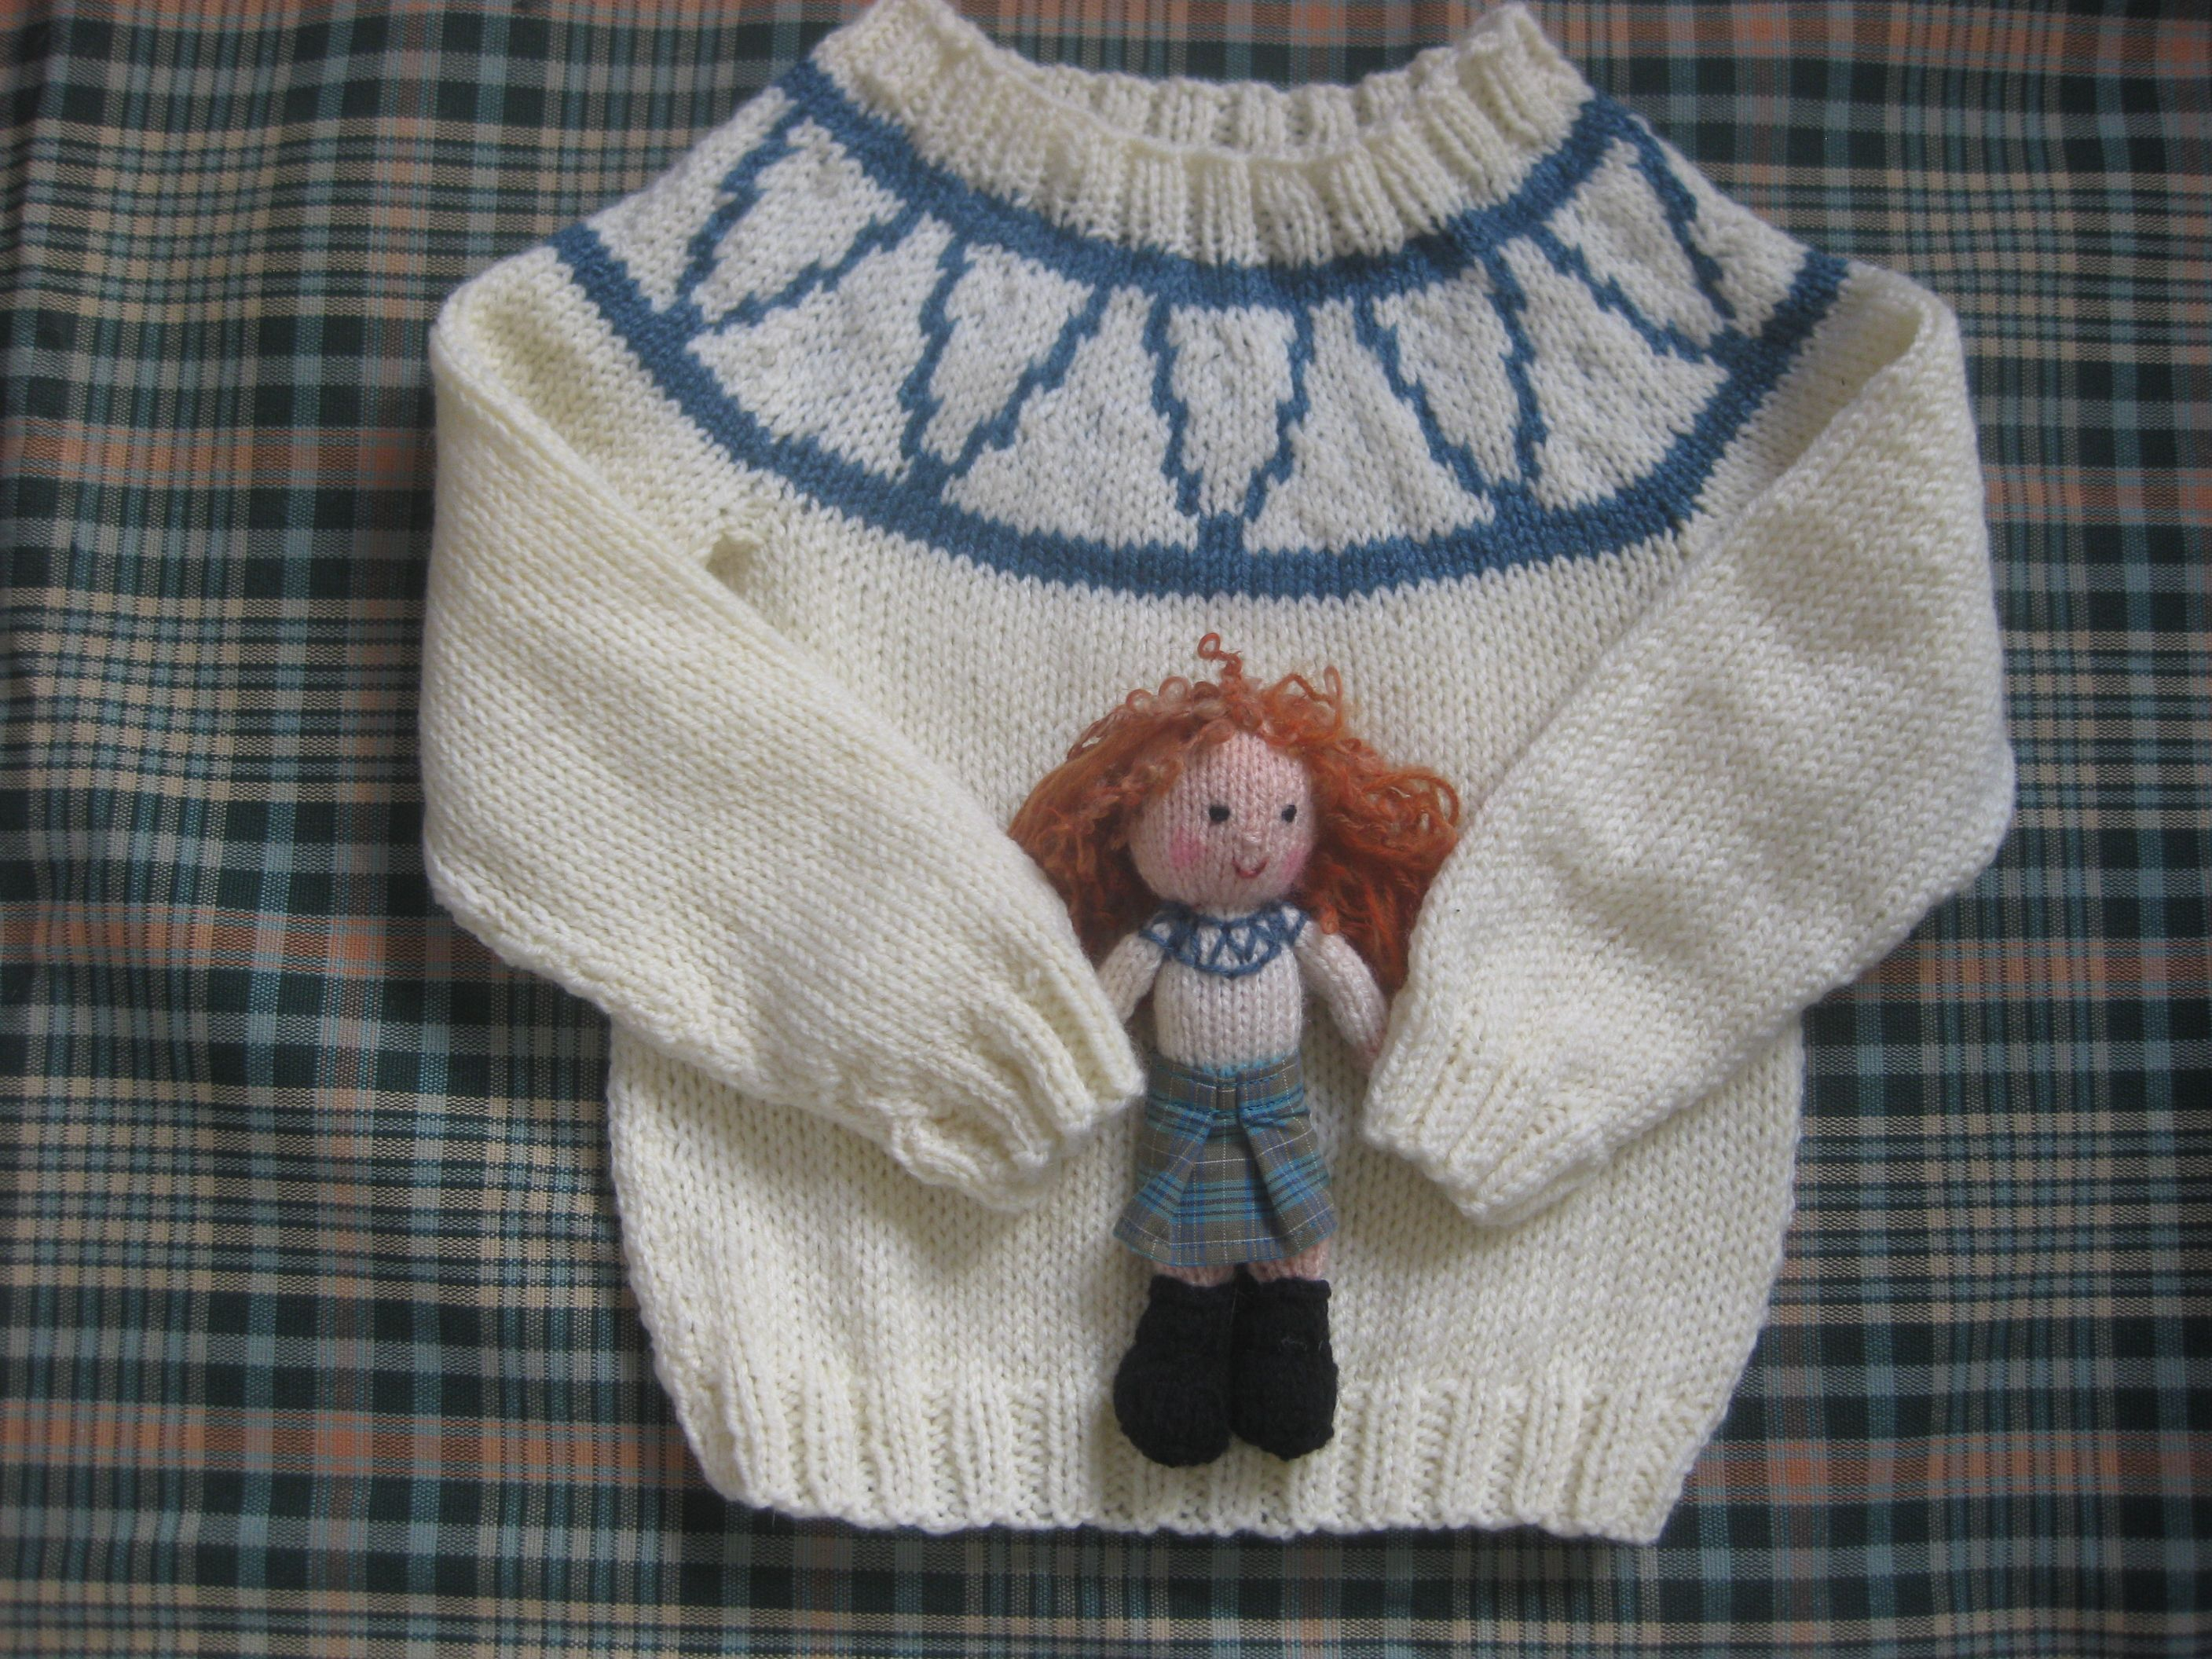 Katie morag inspired jumper and doll by kaypeeclothing baby katie morag inspired jumper and doll by kaypeeclothing fandeluxe Gallery